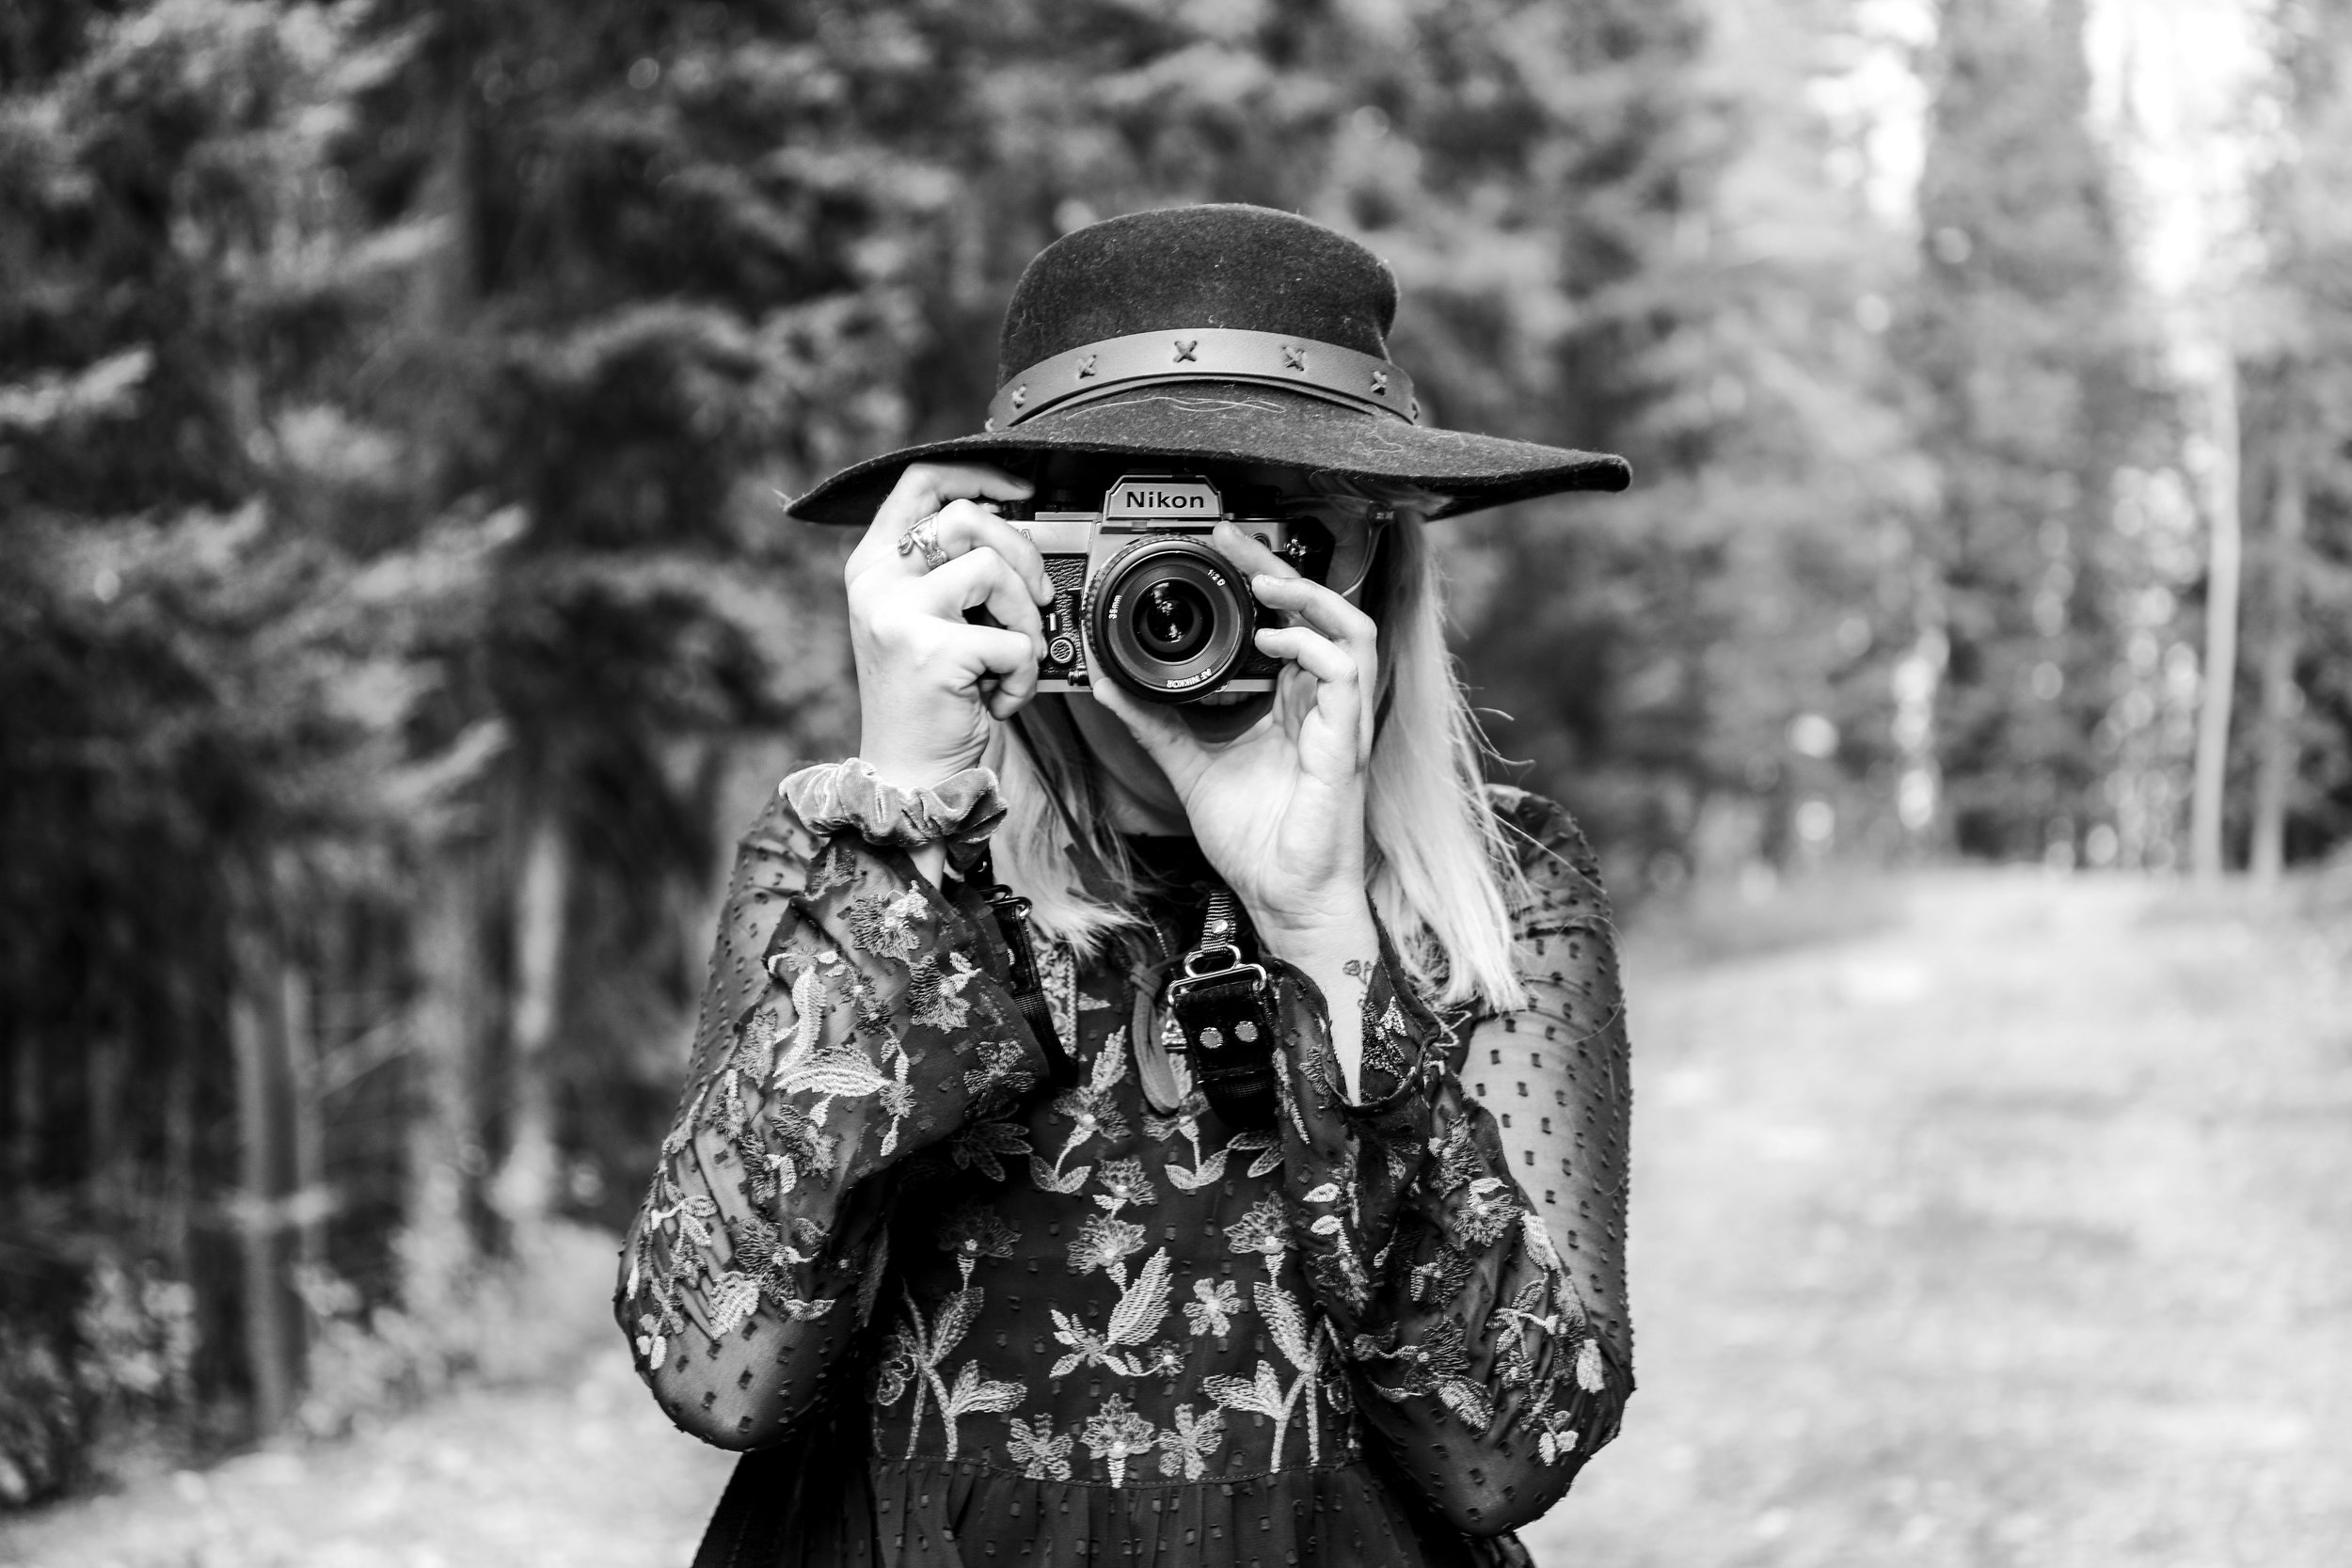 Celia Raney - Based in Albuquerque, New Mexico, Celia is a freelance reporter, avid reader and writer, and coffee connoisseur. Her posts chronicle her published work in the form of articles and photography.